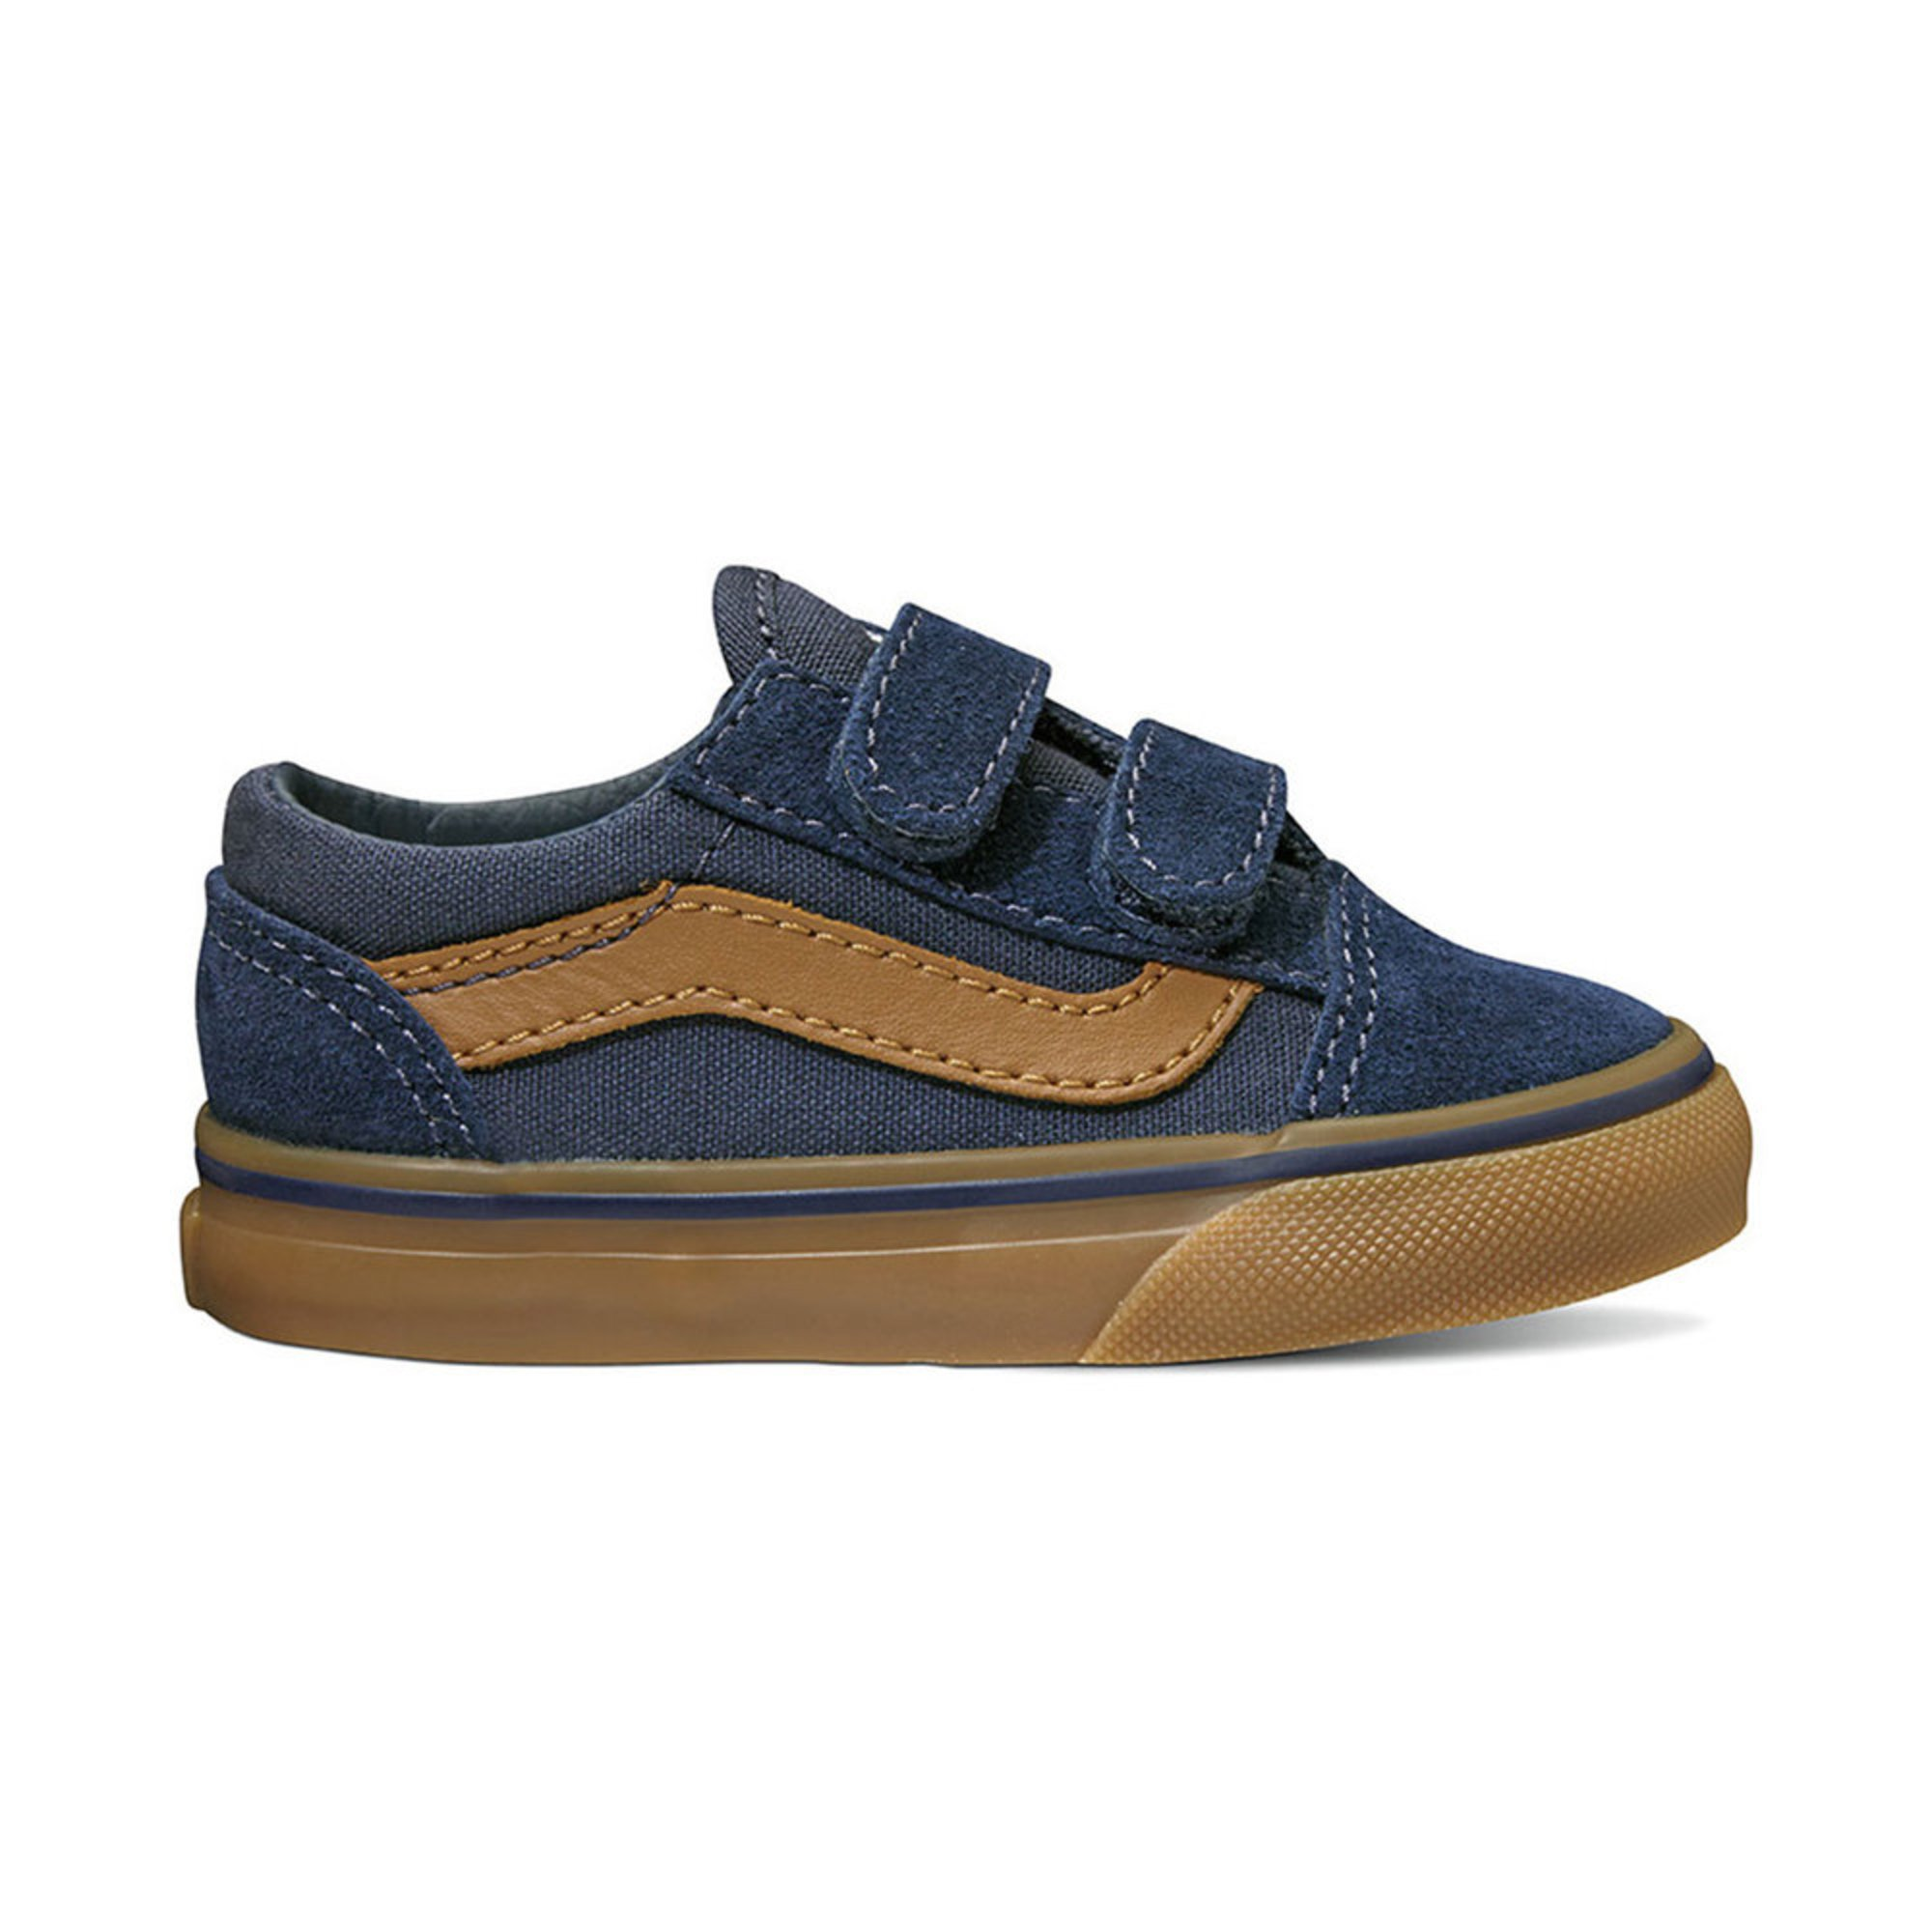 01529083443ab2 Vans. Vans Boys Old Skool Velcro Skate Shoe (Infant Toddler)